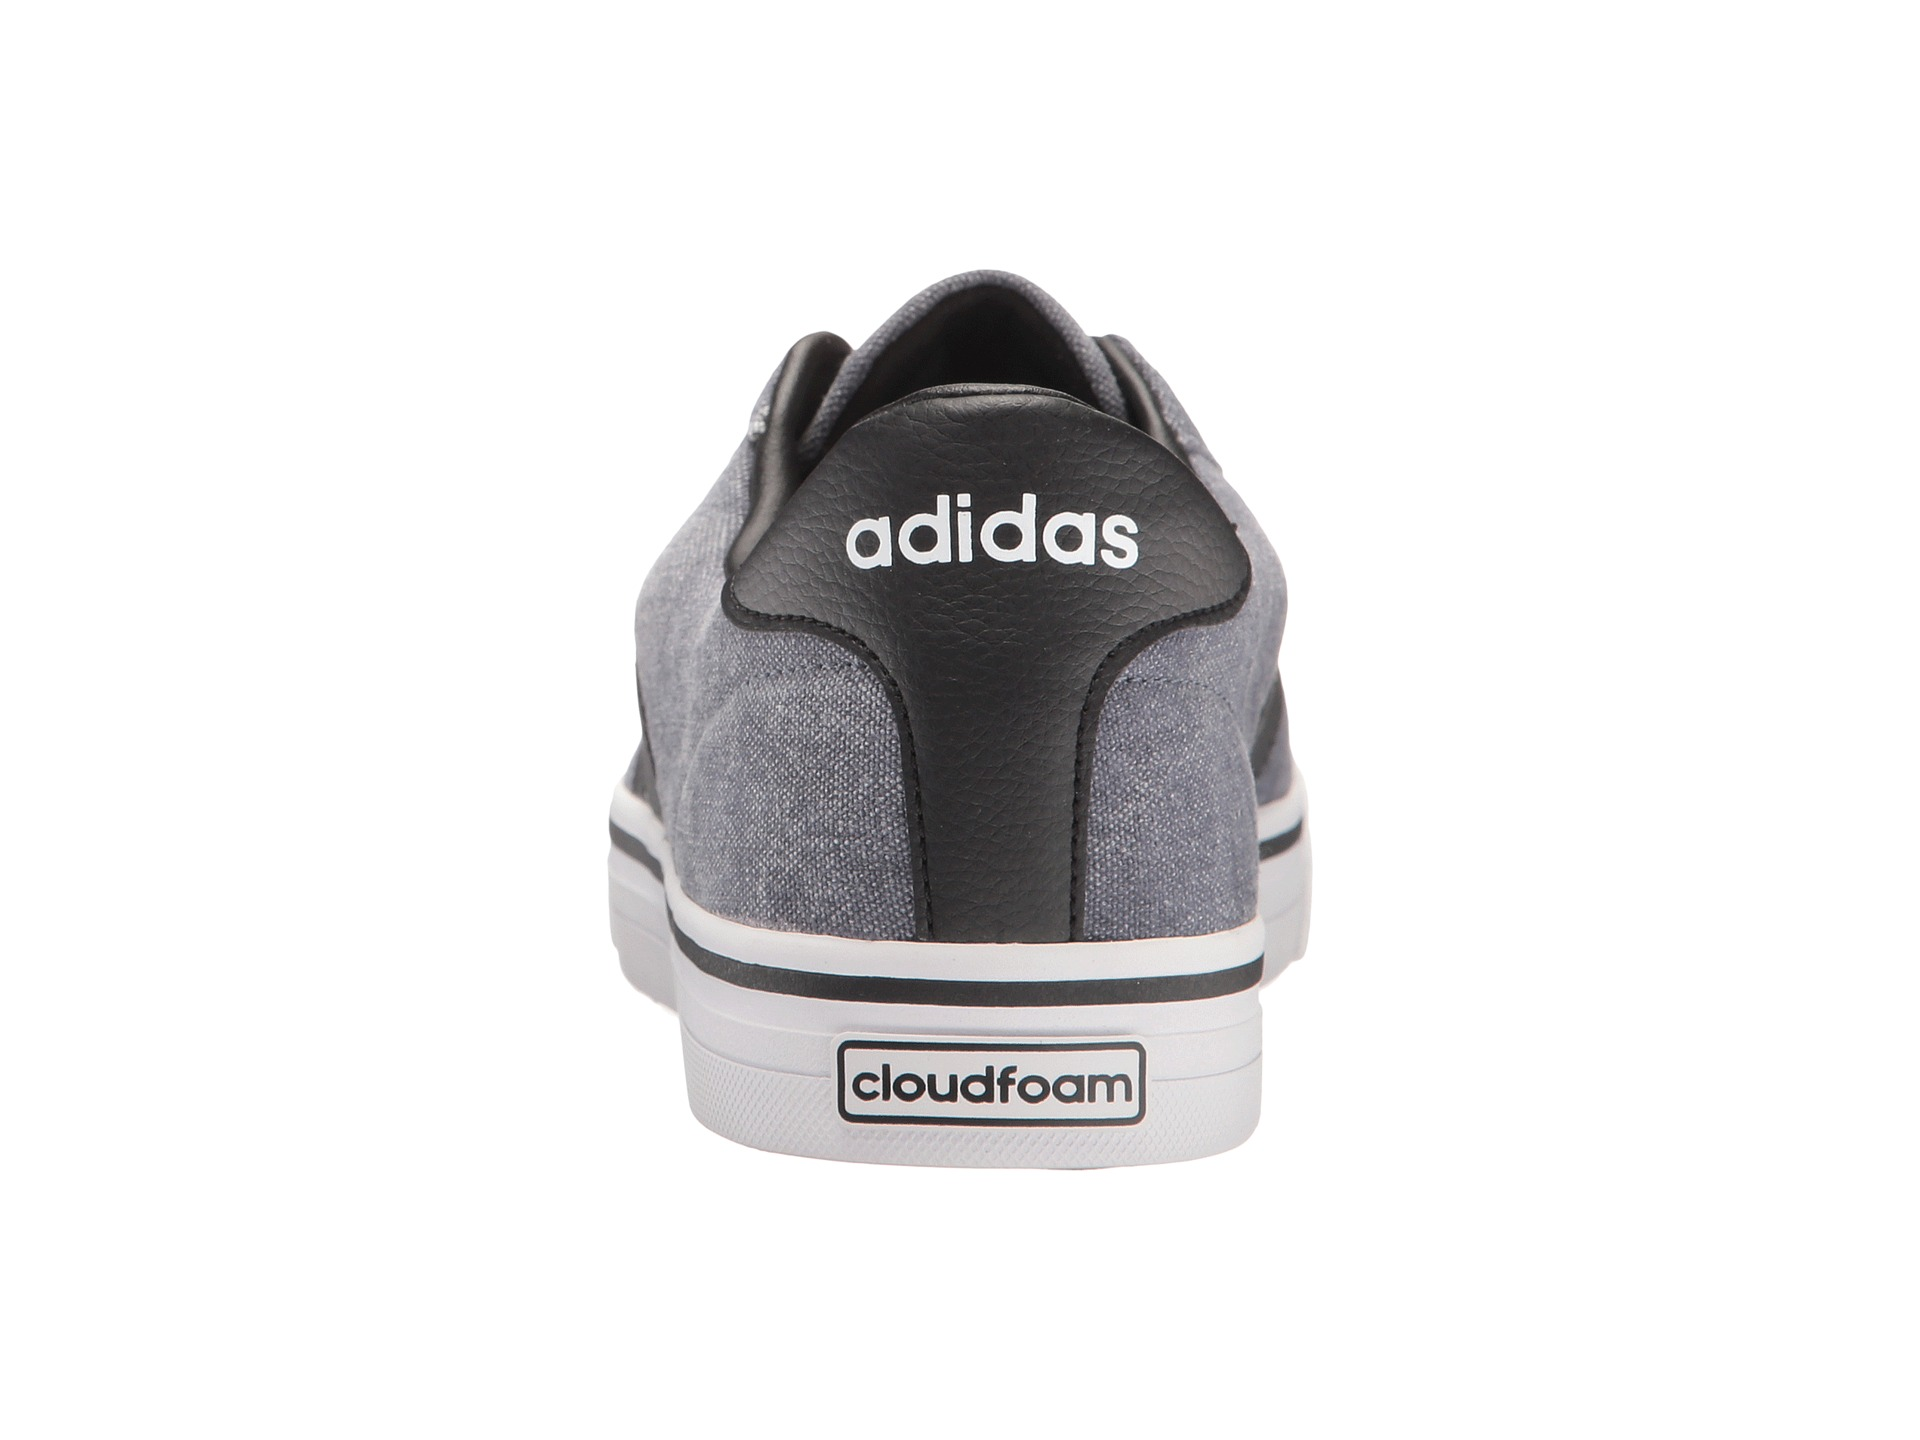 adidas Cloudfoam Super Daily Textile at 6pm.com